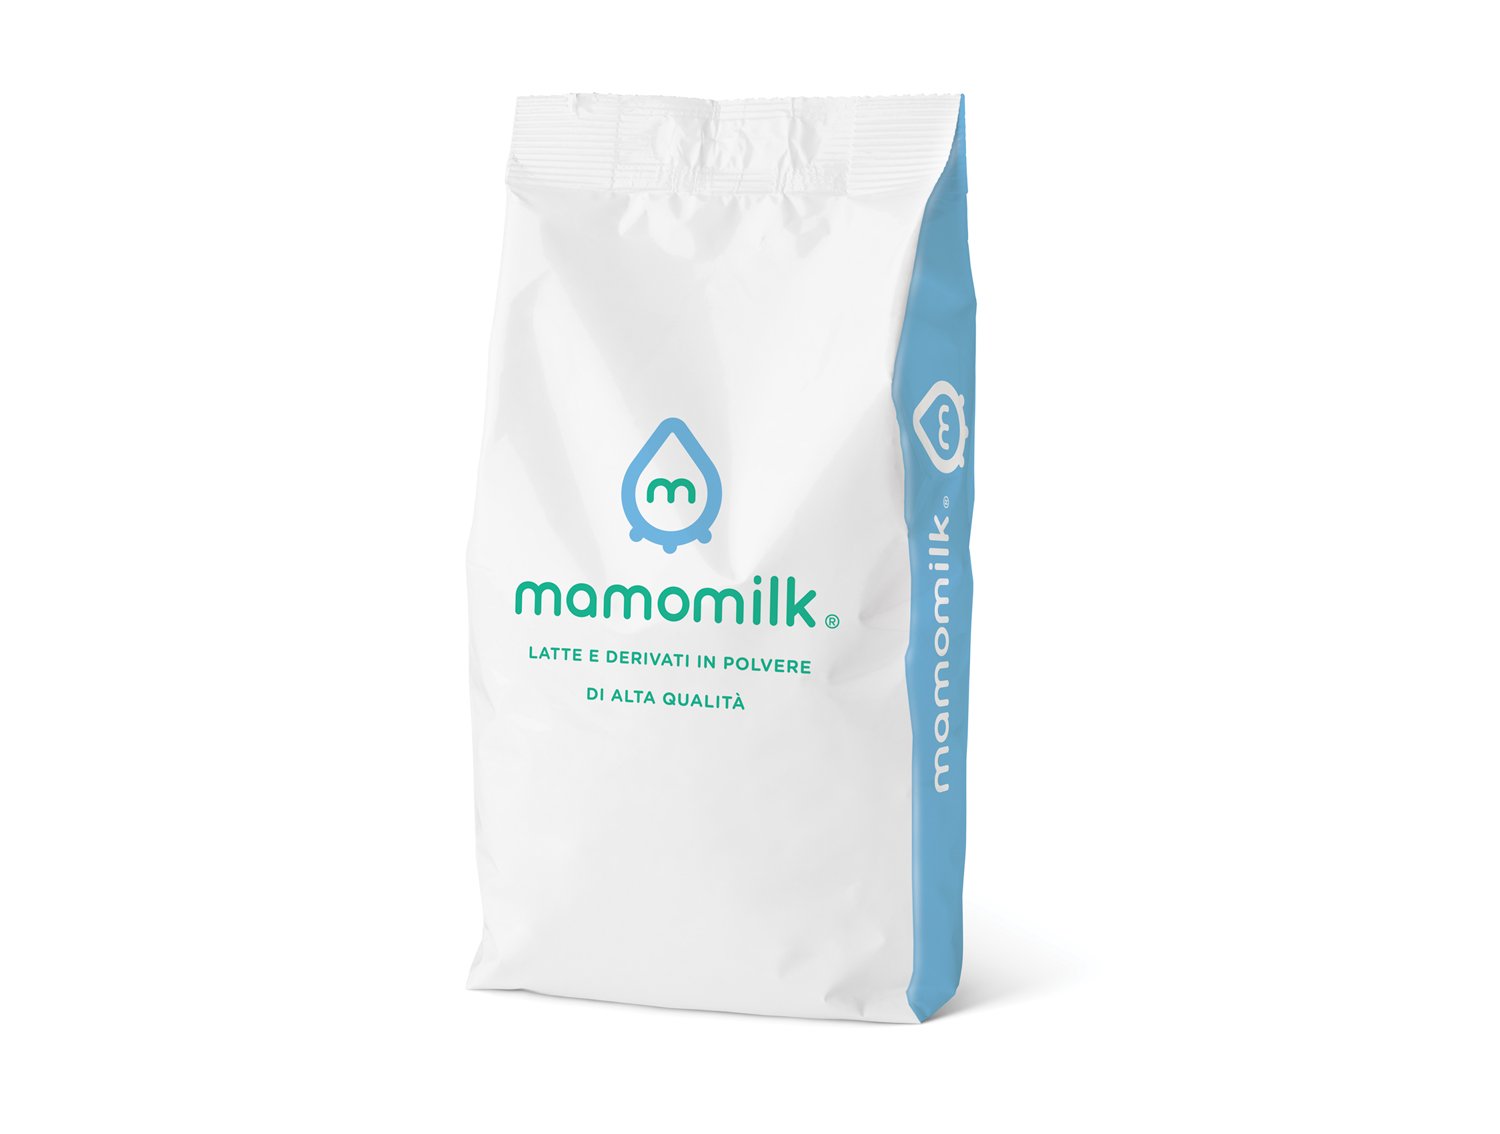 Mamomilk Corporate and Packaging Redesign